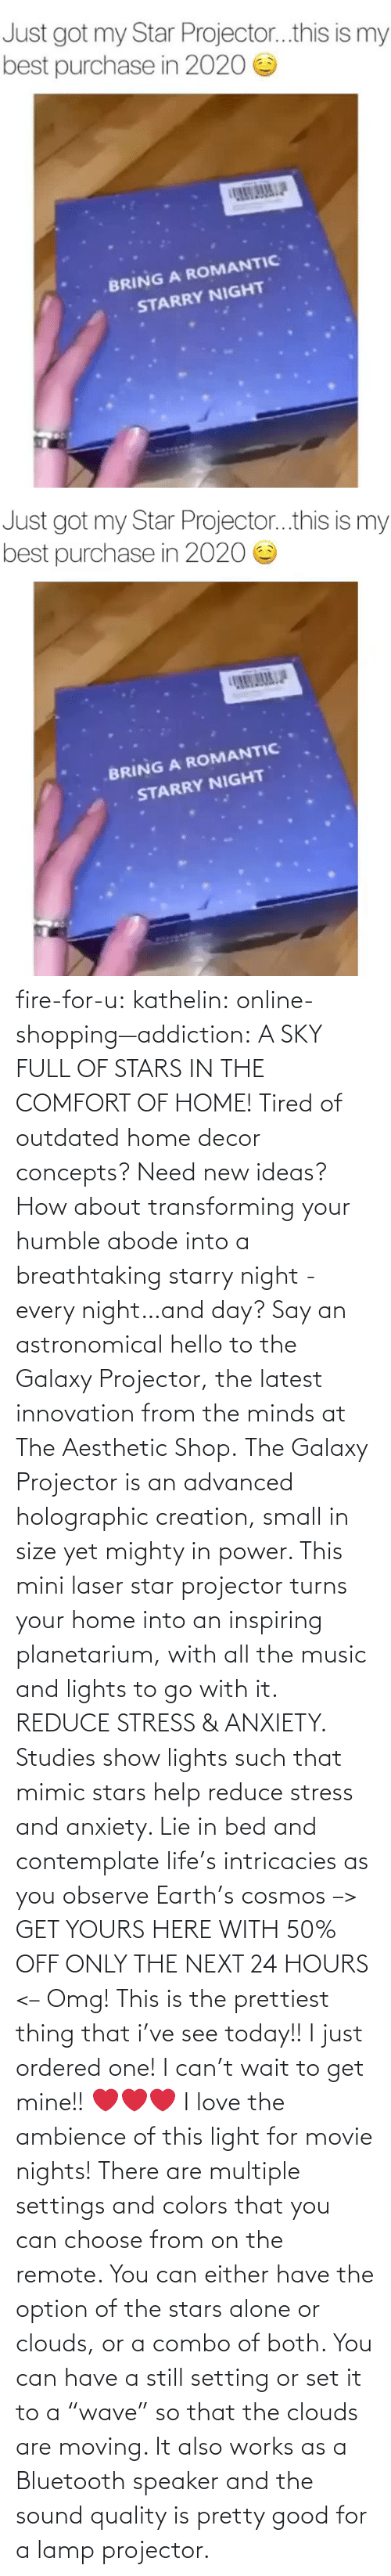 "show: fire-for-u:  kathelin: online-shopping—addiction:  A SKY FULL OF STARS IN THE COMFORT OF HOME! Tired of outdated home decor concepts? Need new ideas? How about transforming your humble abode into a breathtaking starry night - every night…and day? Say an astronomical hello to the Galaxy Projector, the latest innovation from the minds at The Aesthetic Shop. The Galaxy Projector is an advanced holographic creation, small in size yet mighty in power. This mini laser star projector turns your home into an inspiring planetarium, with all the music and lights to go with it. REDUCE STRESS & ANXIETY. Studies show lights such that mimic stars help reduce stress and anxiety. Lie in bed and contemplate life's intricacies as you observe Earth's cosmos  –> GET YOURS HERE WITH 50% OFF ONLY THE NEXT 24 HOURS <–   Omg! This is the prettiest thing that i've see today!! I just ordered one! I can't wait to get mine!! ❤️️❤️️❤️️  I love the ambience of this light for movie nights! There are multiple settings and colors that you can choose from on the remote. You can either have the option of the stars alone or clouds, or a combo of both. You can have a still setting or set it to a ""wave"" so that the clouds are moving. It also works as a Bluetooth speaker and the sound quality is pretty good for a lamp projector."